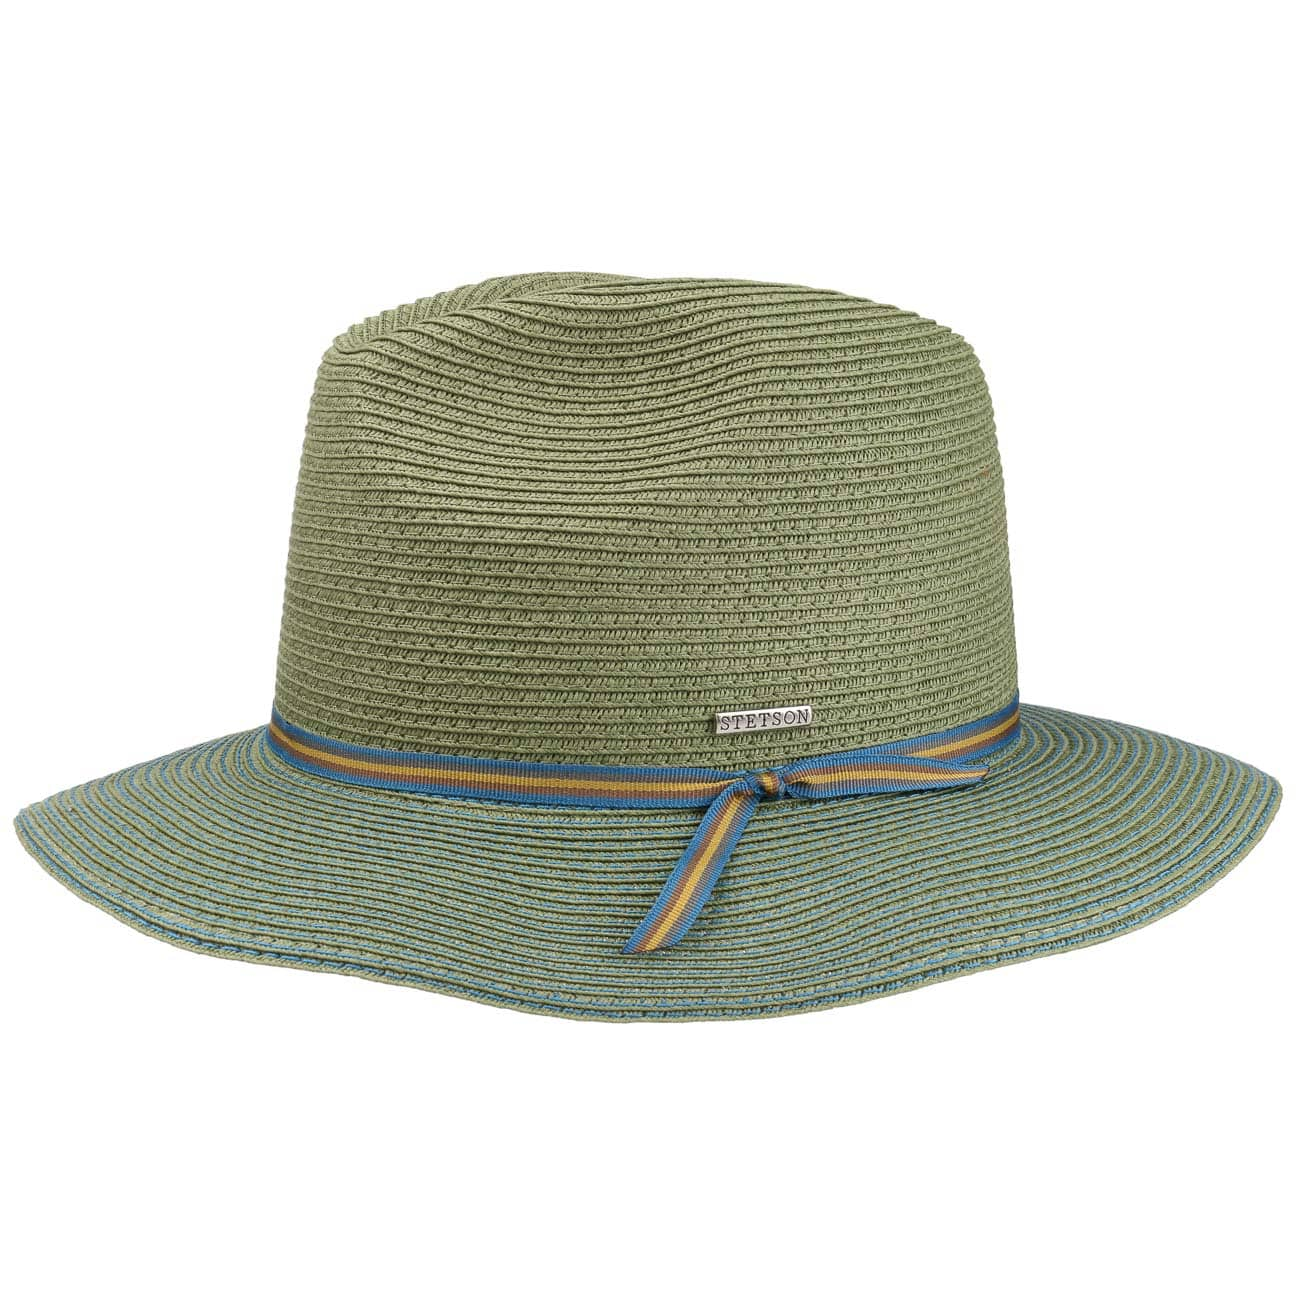 Contrast Stitch Toyo Floppy Hat by Stetson  sun hat